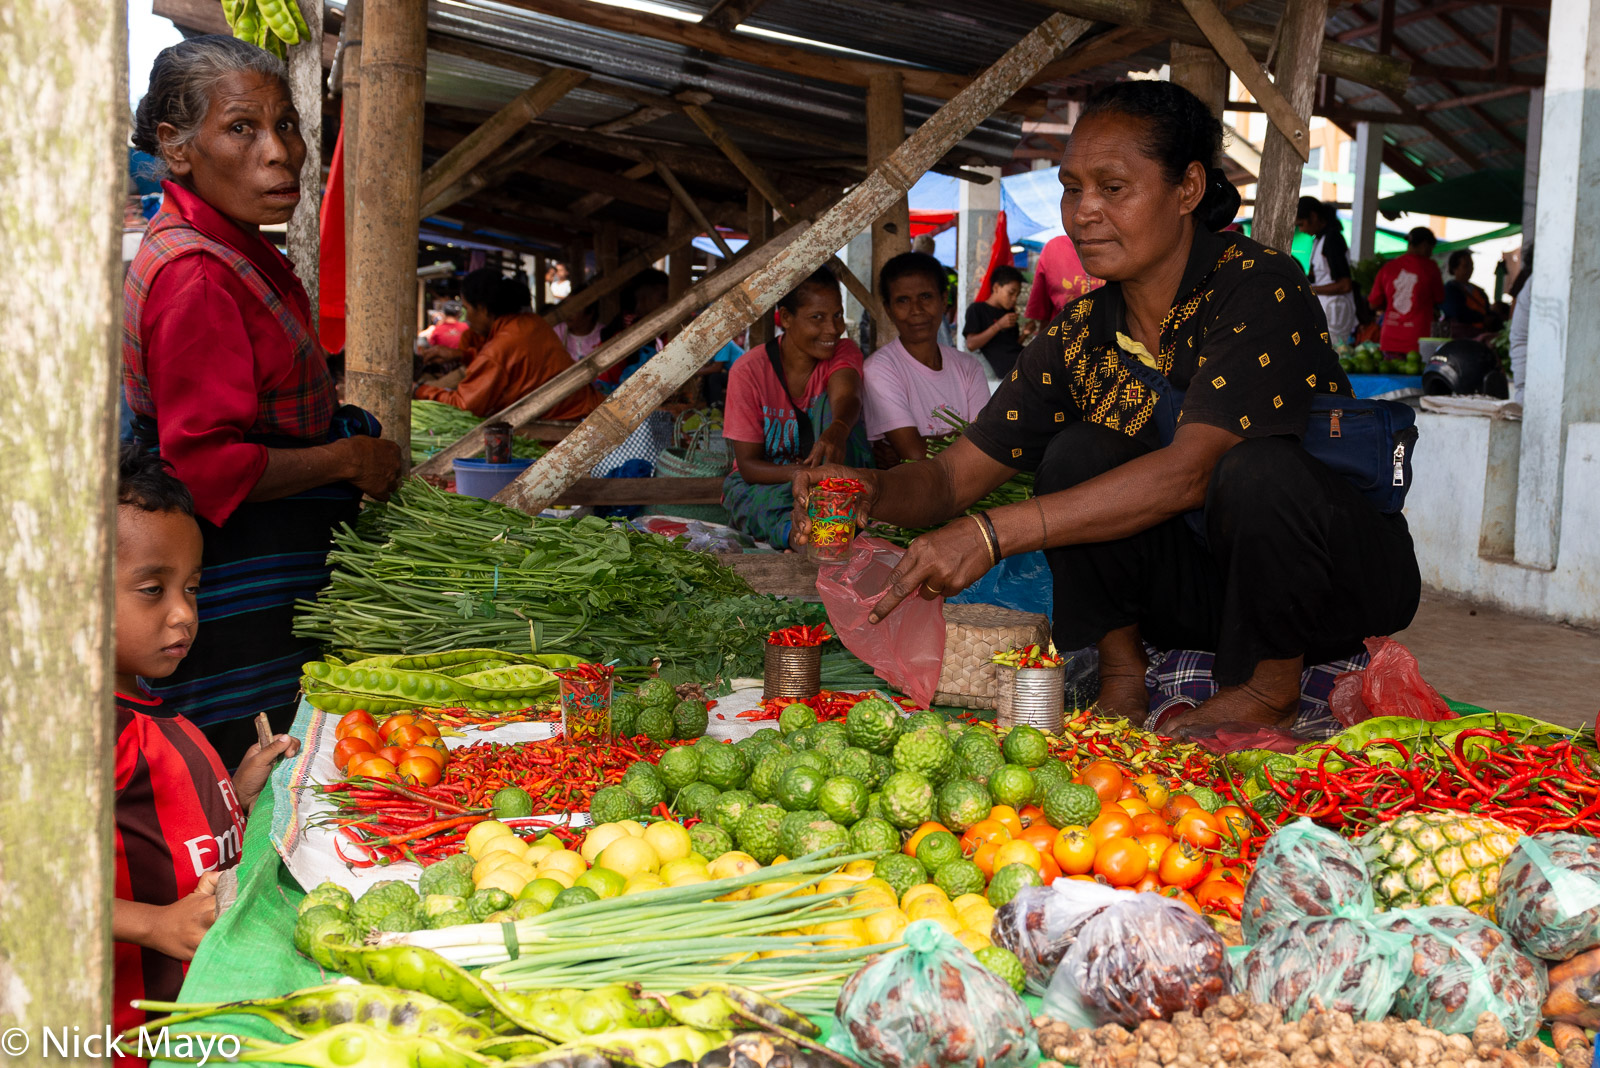 A vendor selling fruit and vegetables at Mataloko market in Ngada Regency.